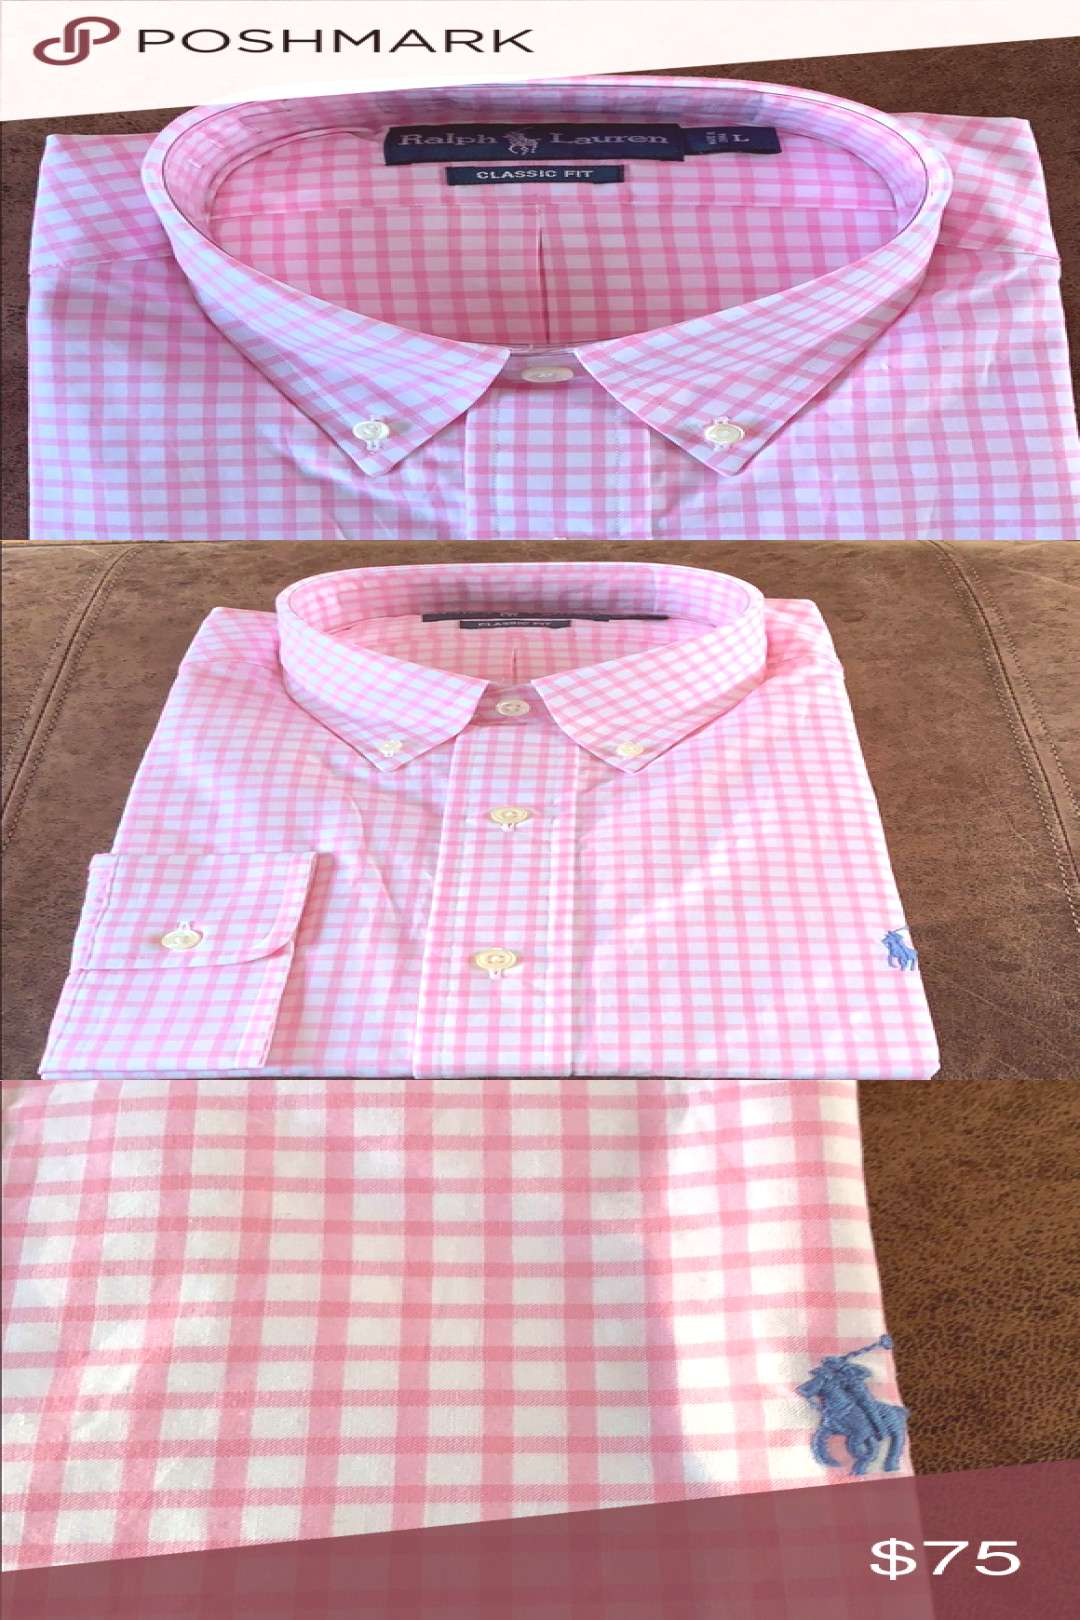 NWT! Ralph Lauren Classic Fit Button-down shirt NWT! Classic pink and white look in the Classic fit